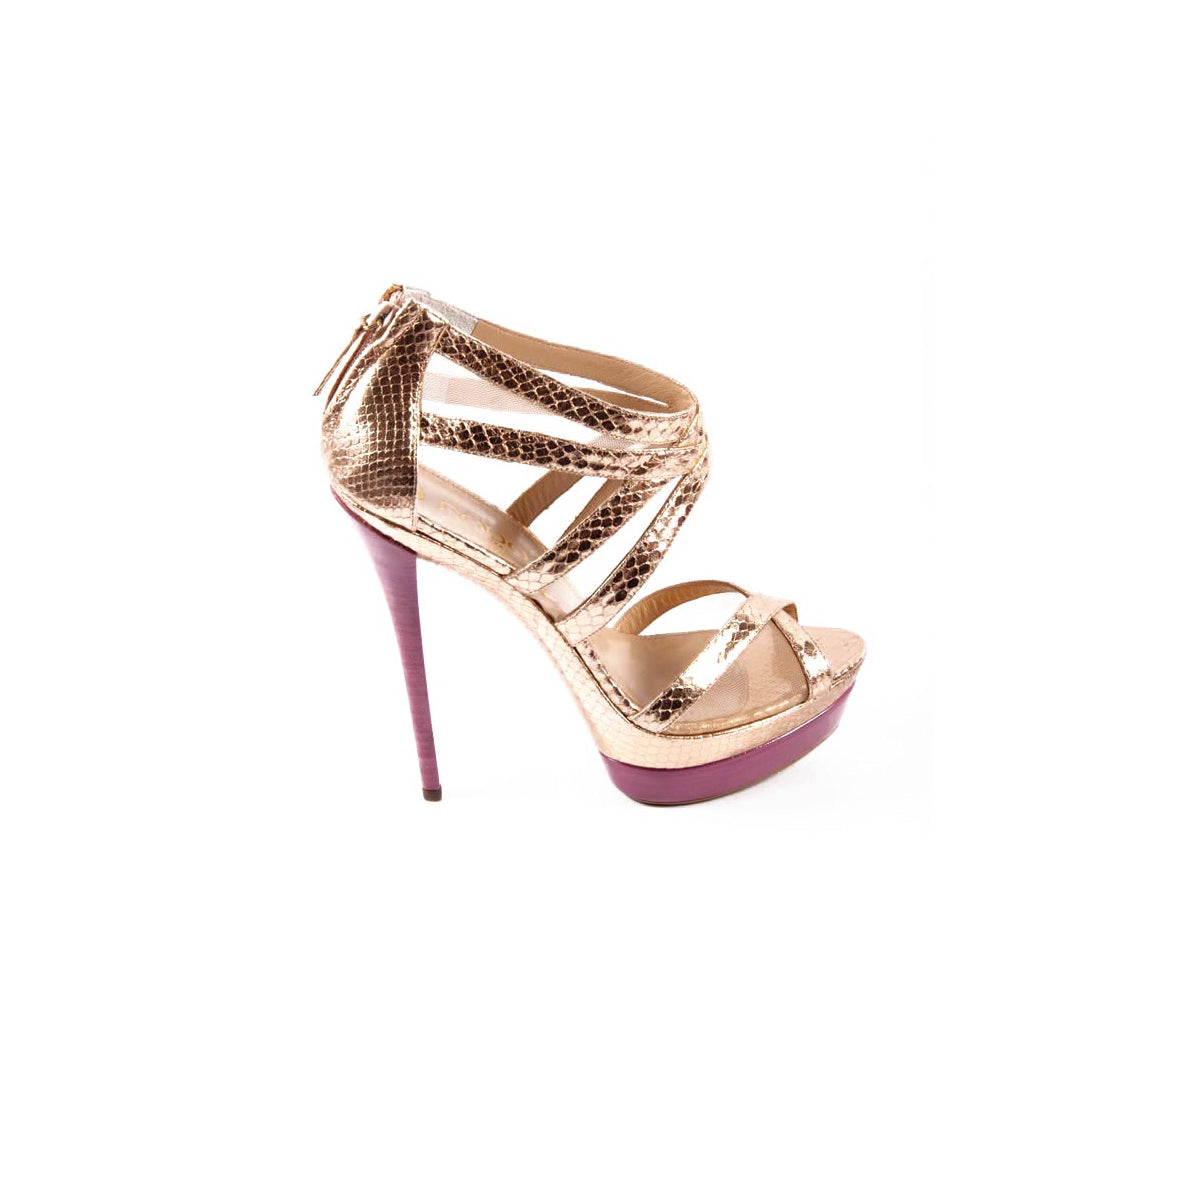 Rodo ladies sandal S8691 438 680